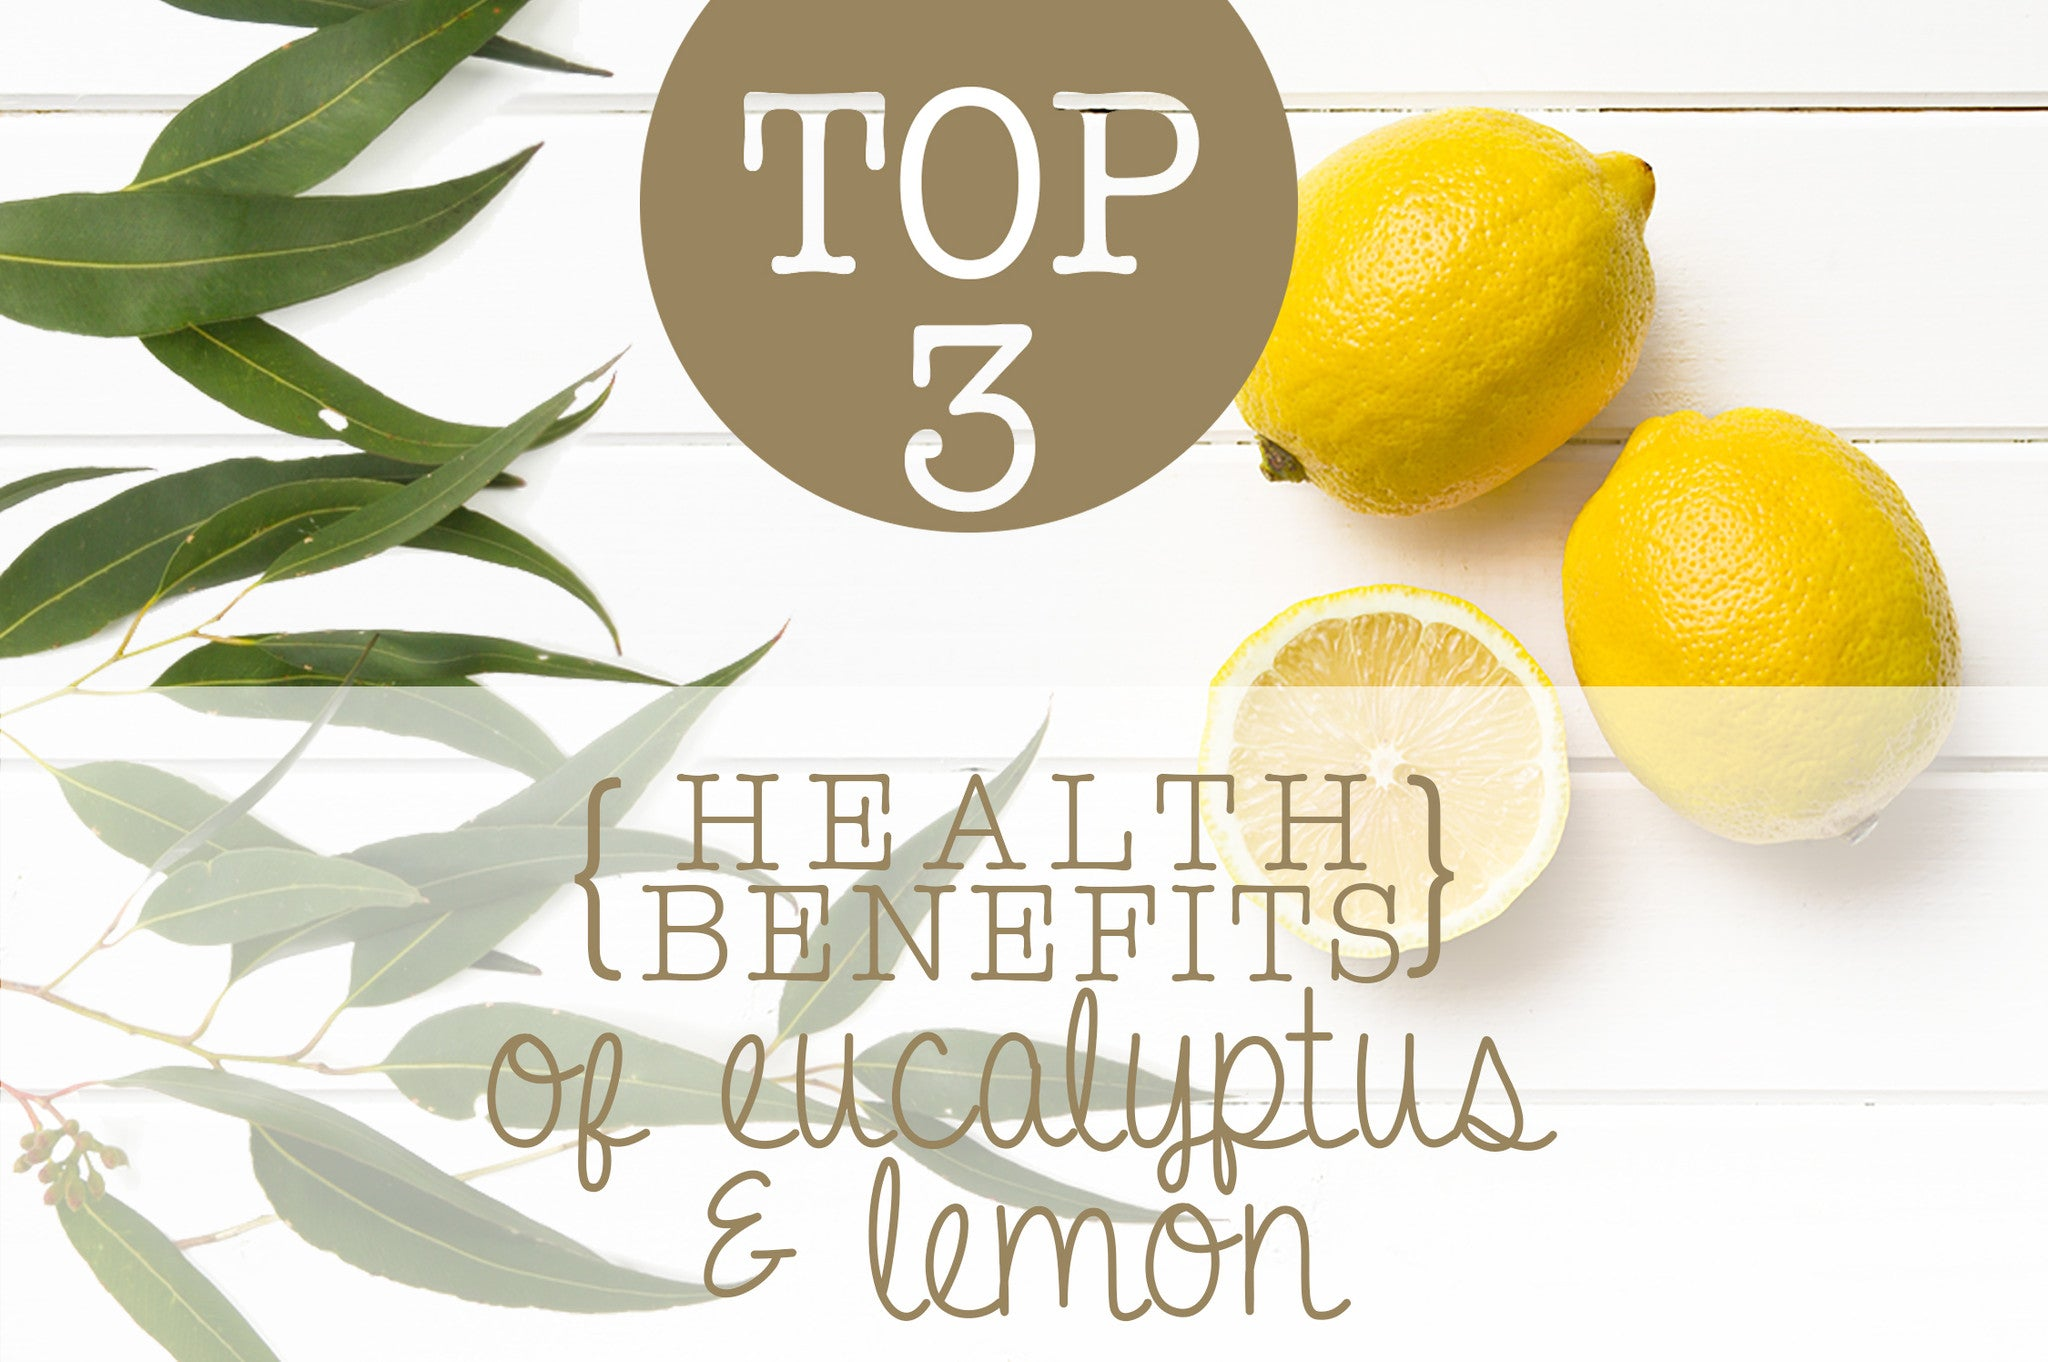 TOP 3 HEALTH BENEFITS OF EUCALYPTUS & LEMON